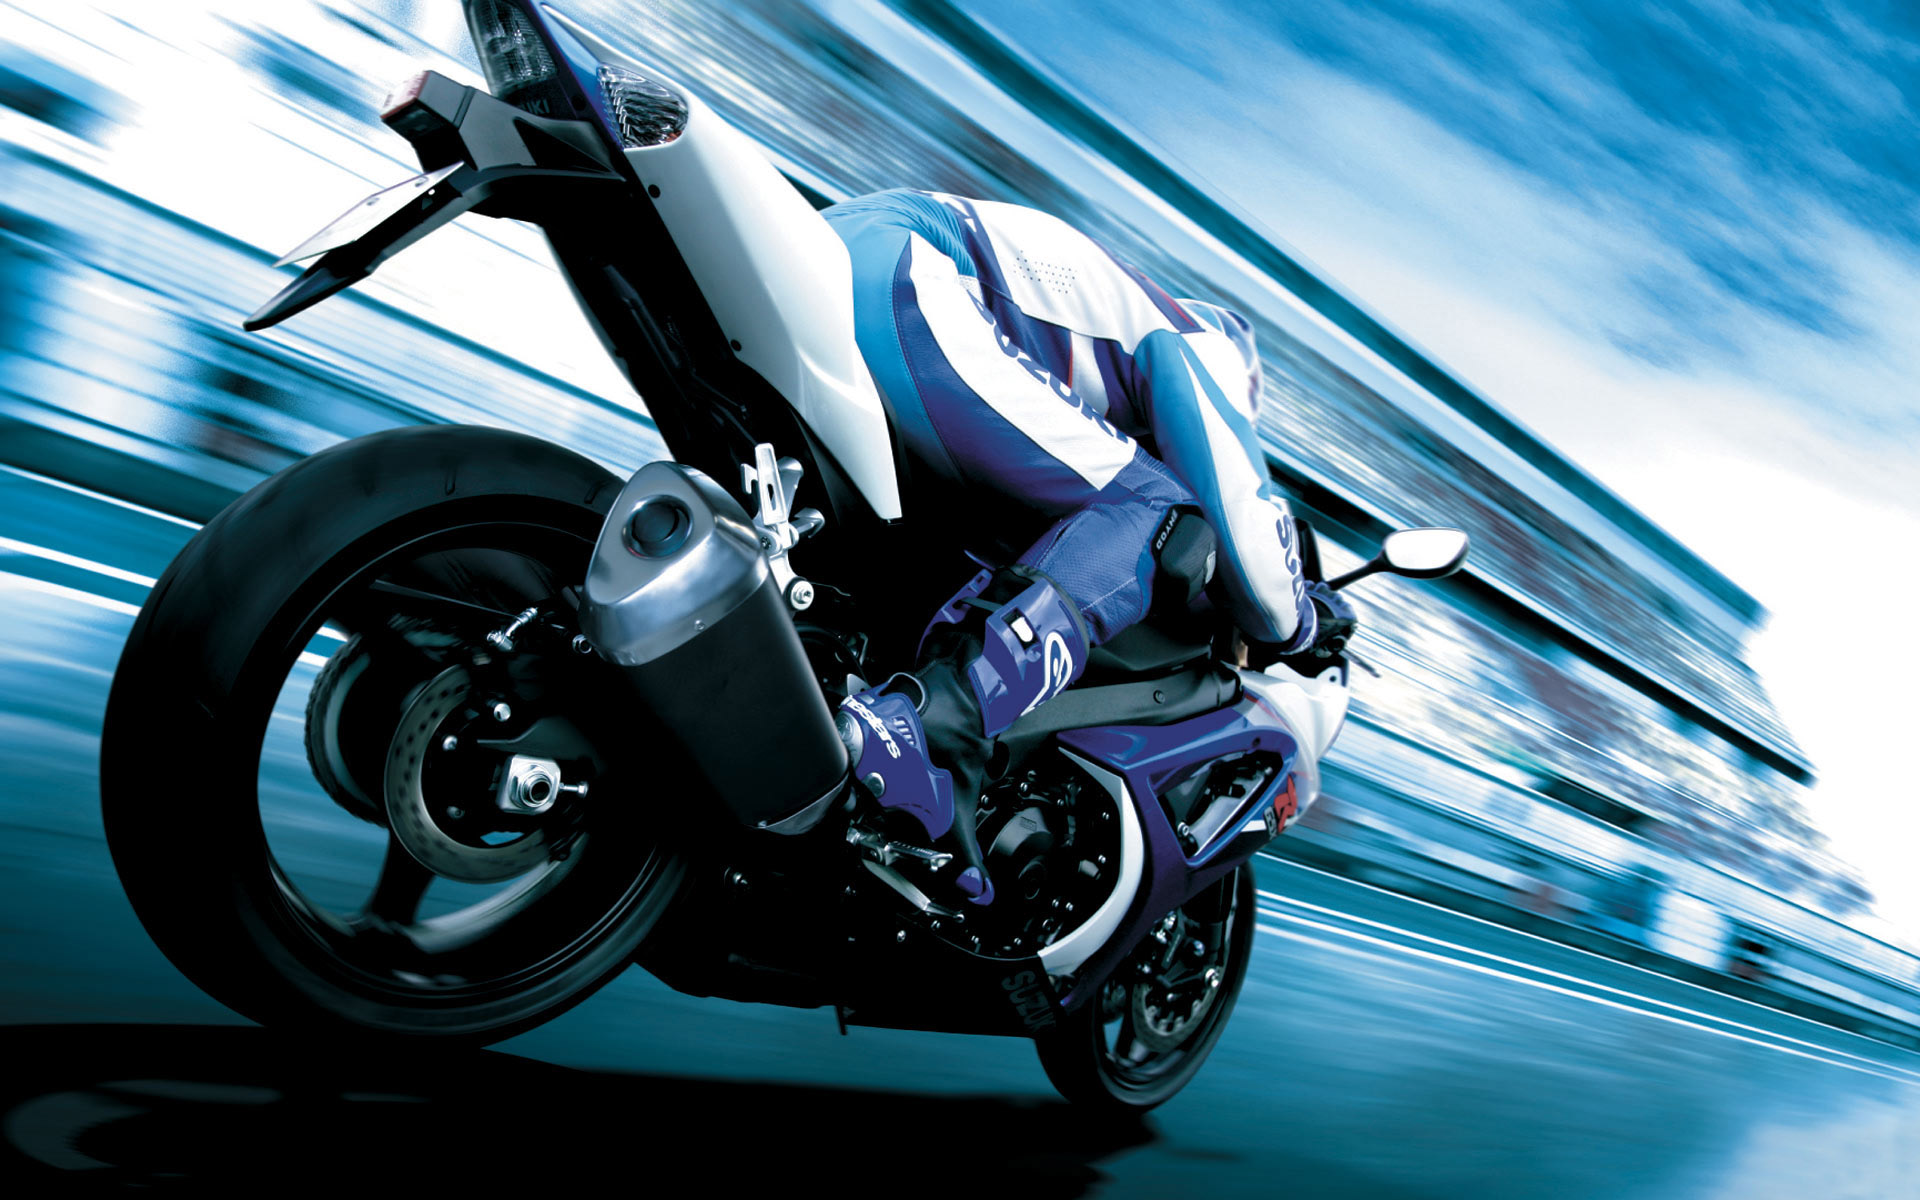 heavy bikes wallpapers free download - photo #15